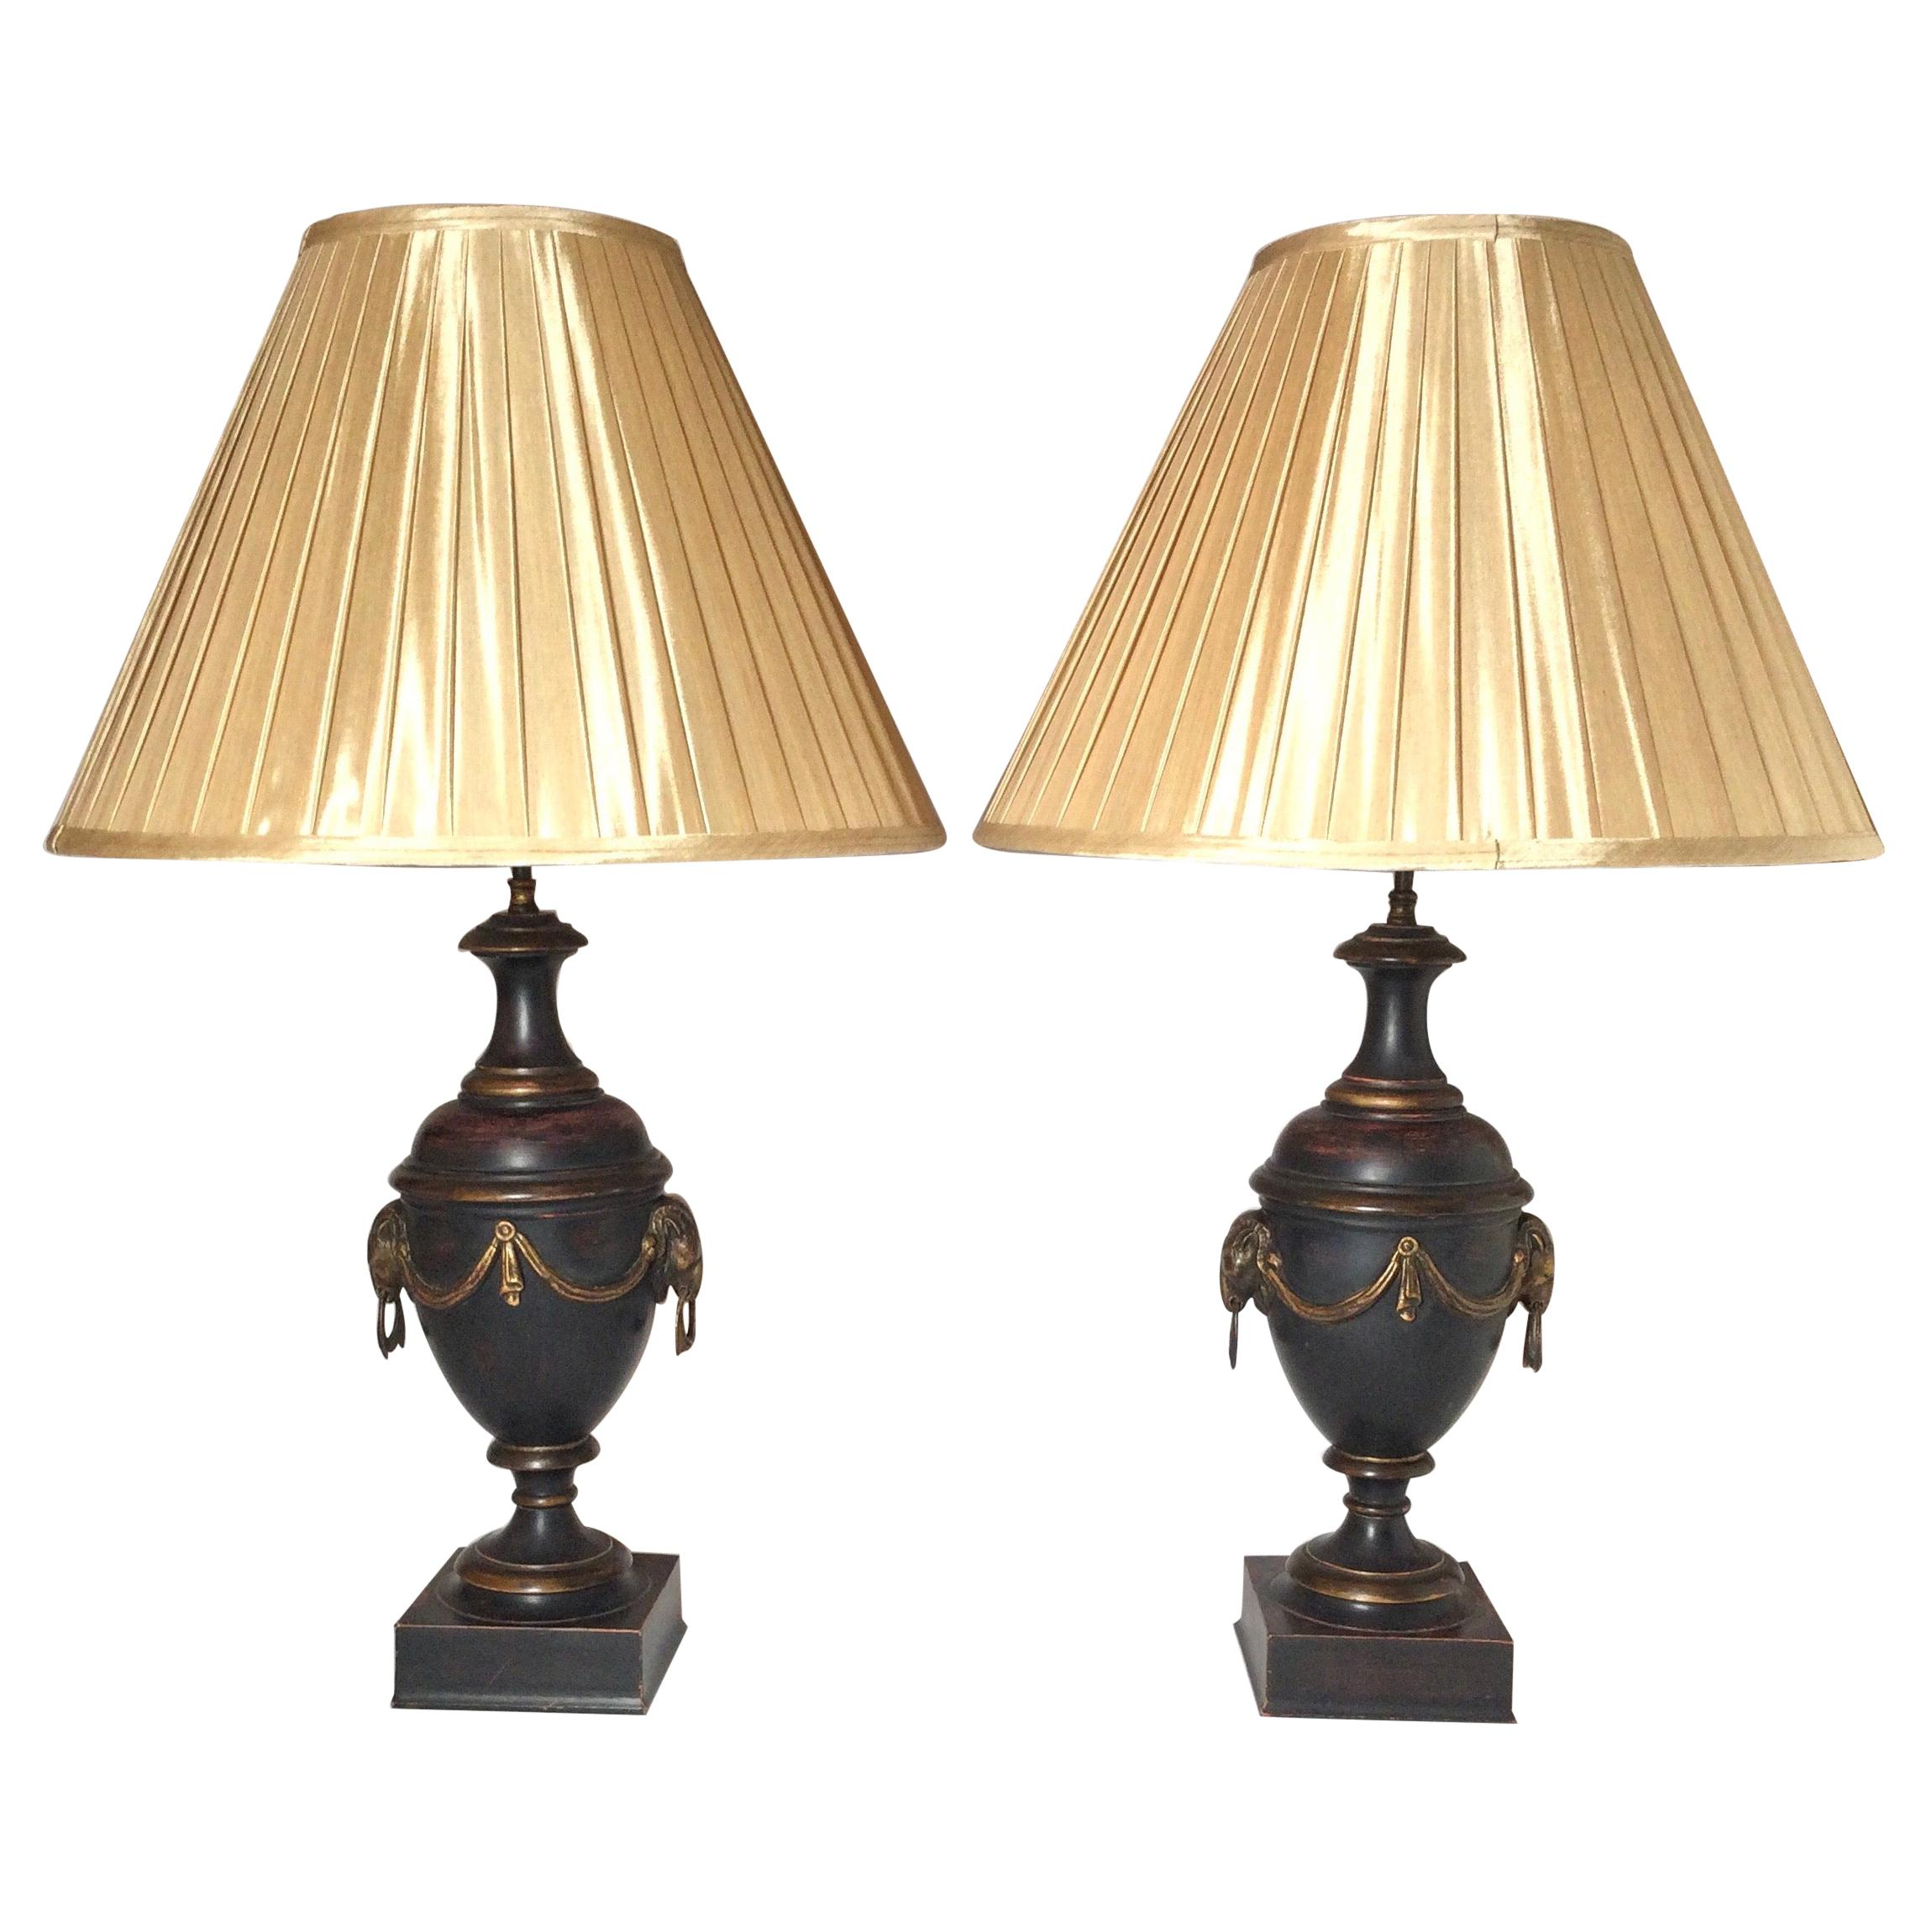 Pair of Neoclassical Patinated Urn Lamps